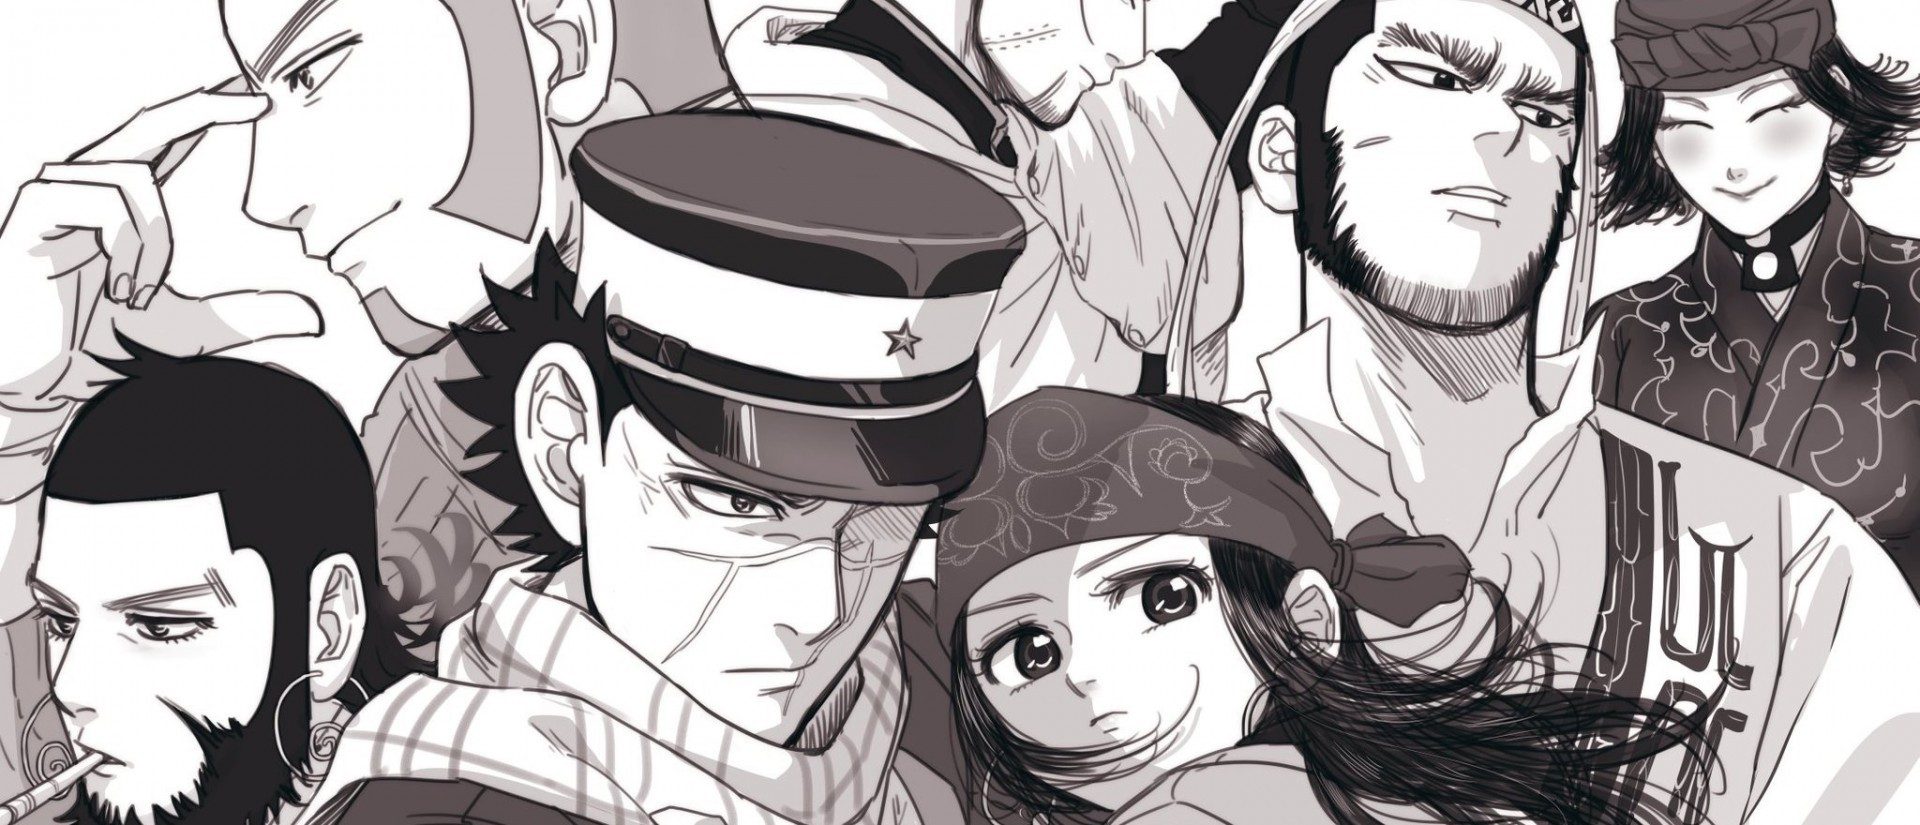 Golden Kamuy Wallpaper Posted By Ethan Mercado Images, Photos, Reviews